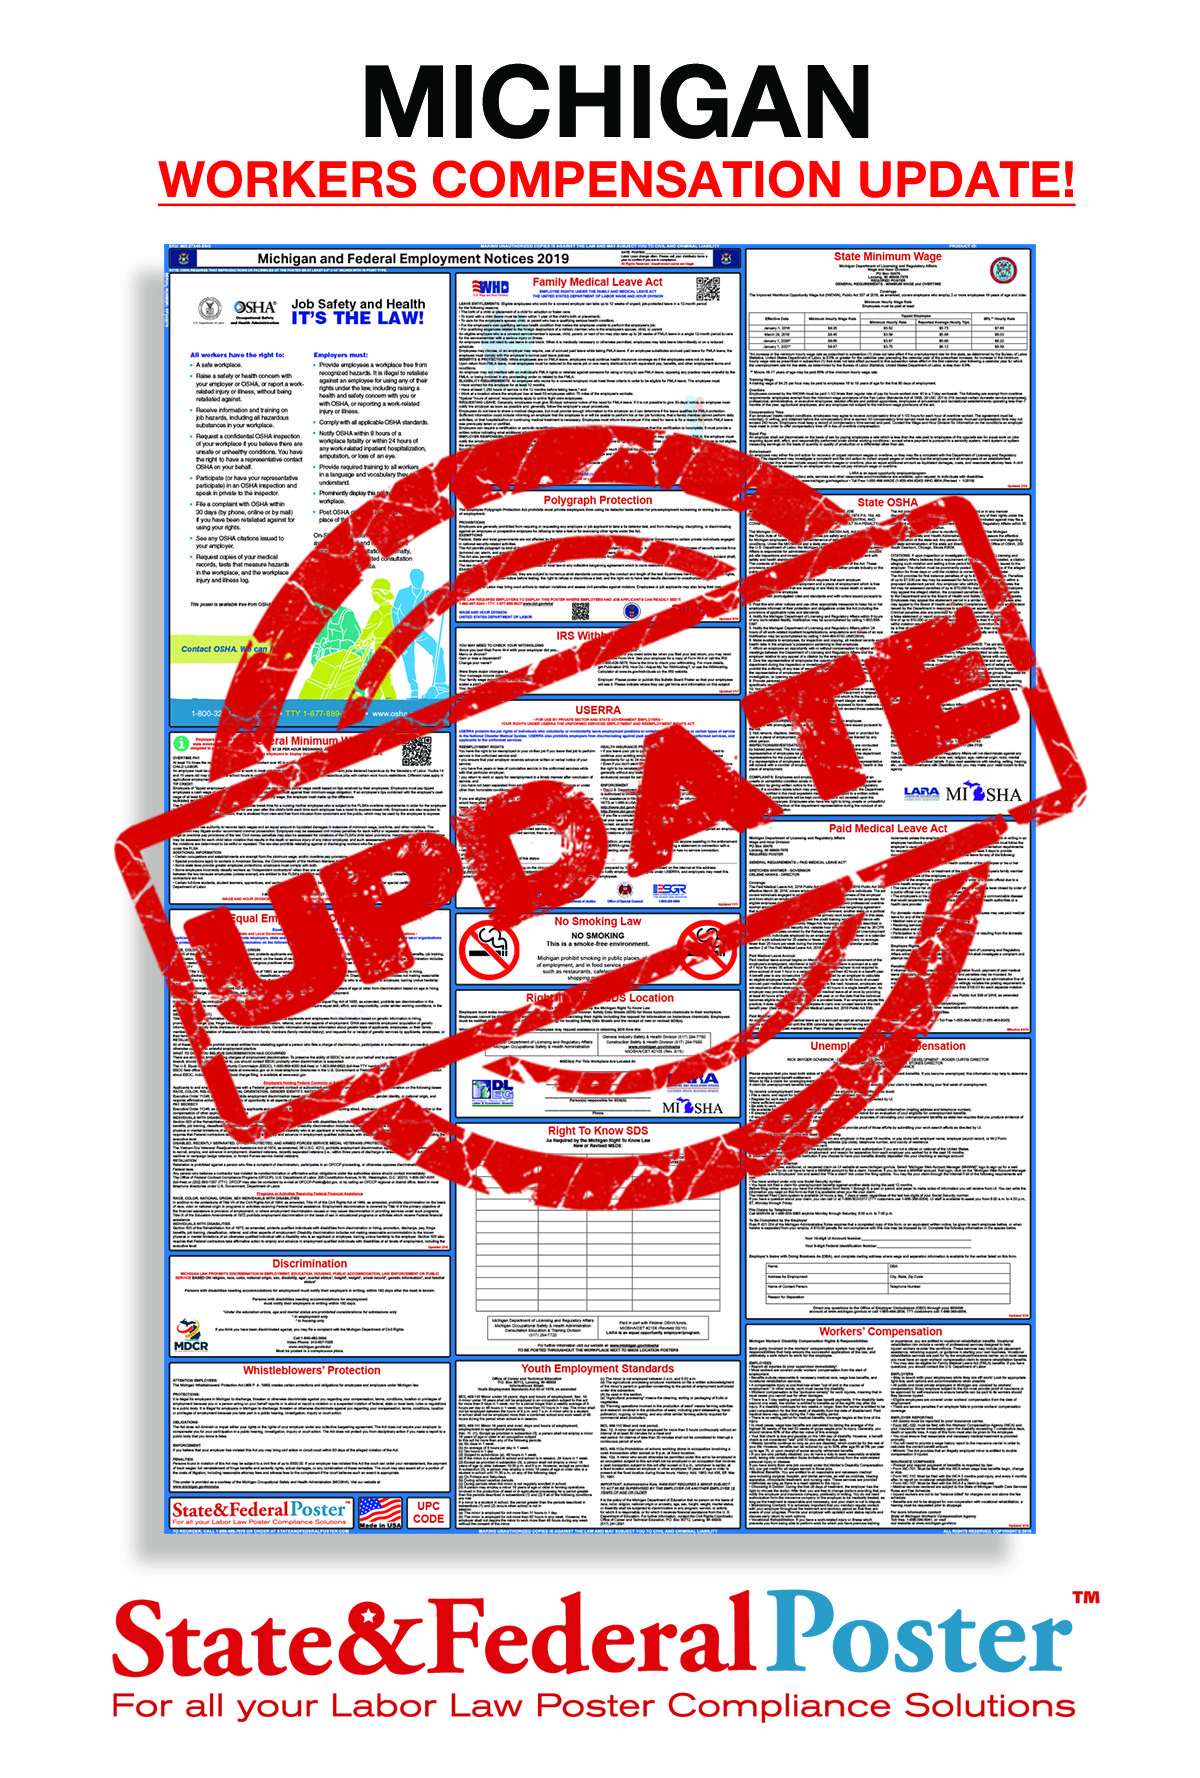 NEW Michigan Workers Compensation Update! AVAILABLE NOW AT